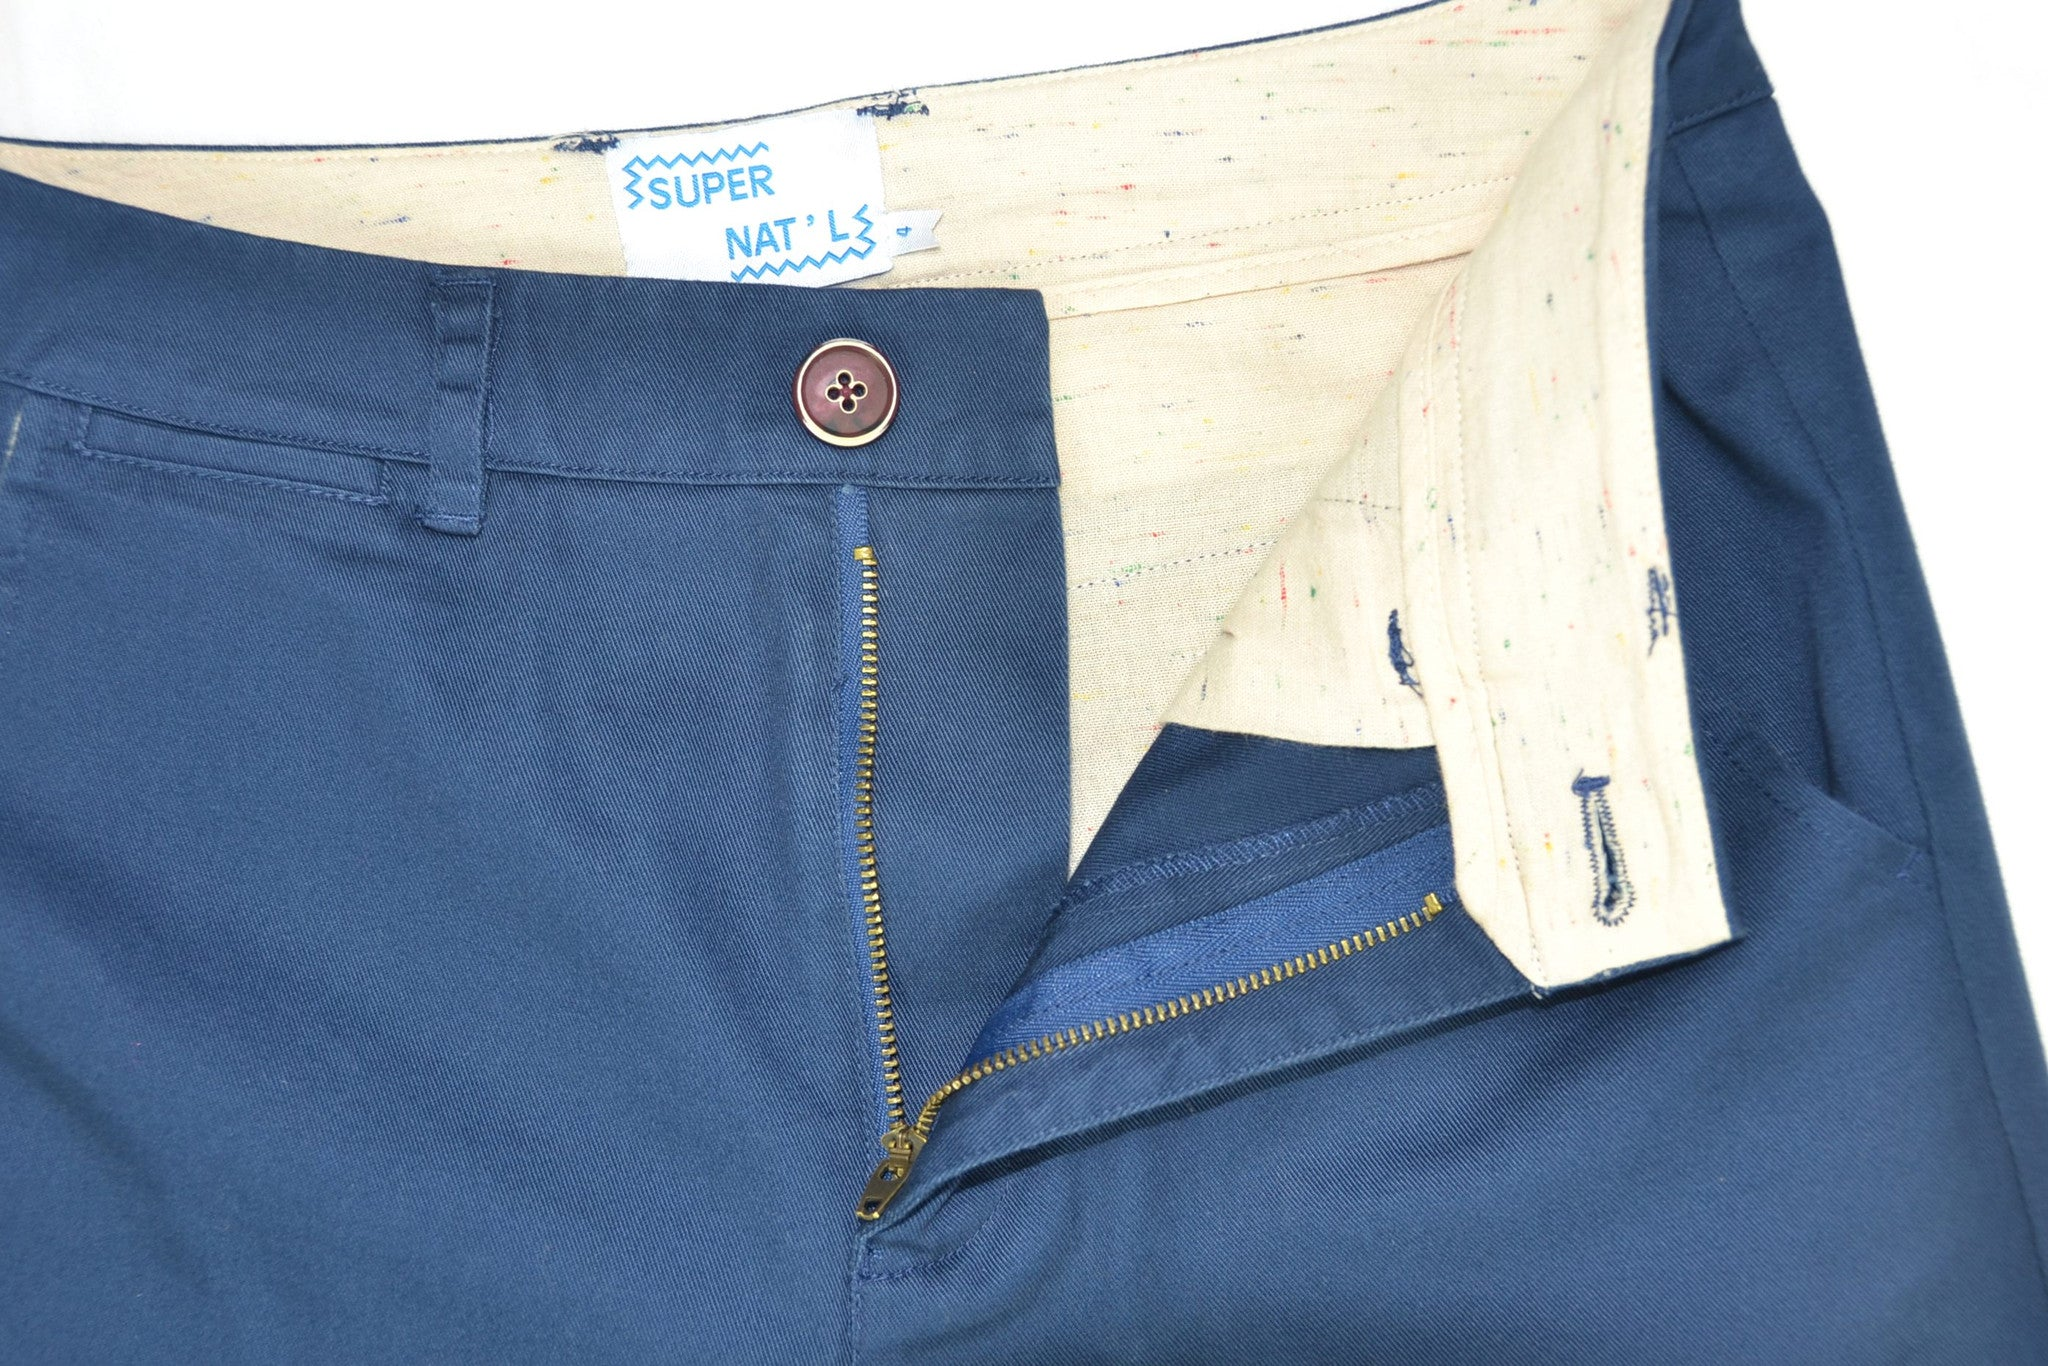 Supernat'l - Washed Twill Slouch Pant / Blue - size large only!